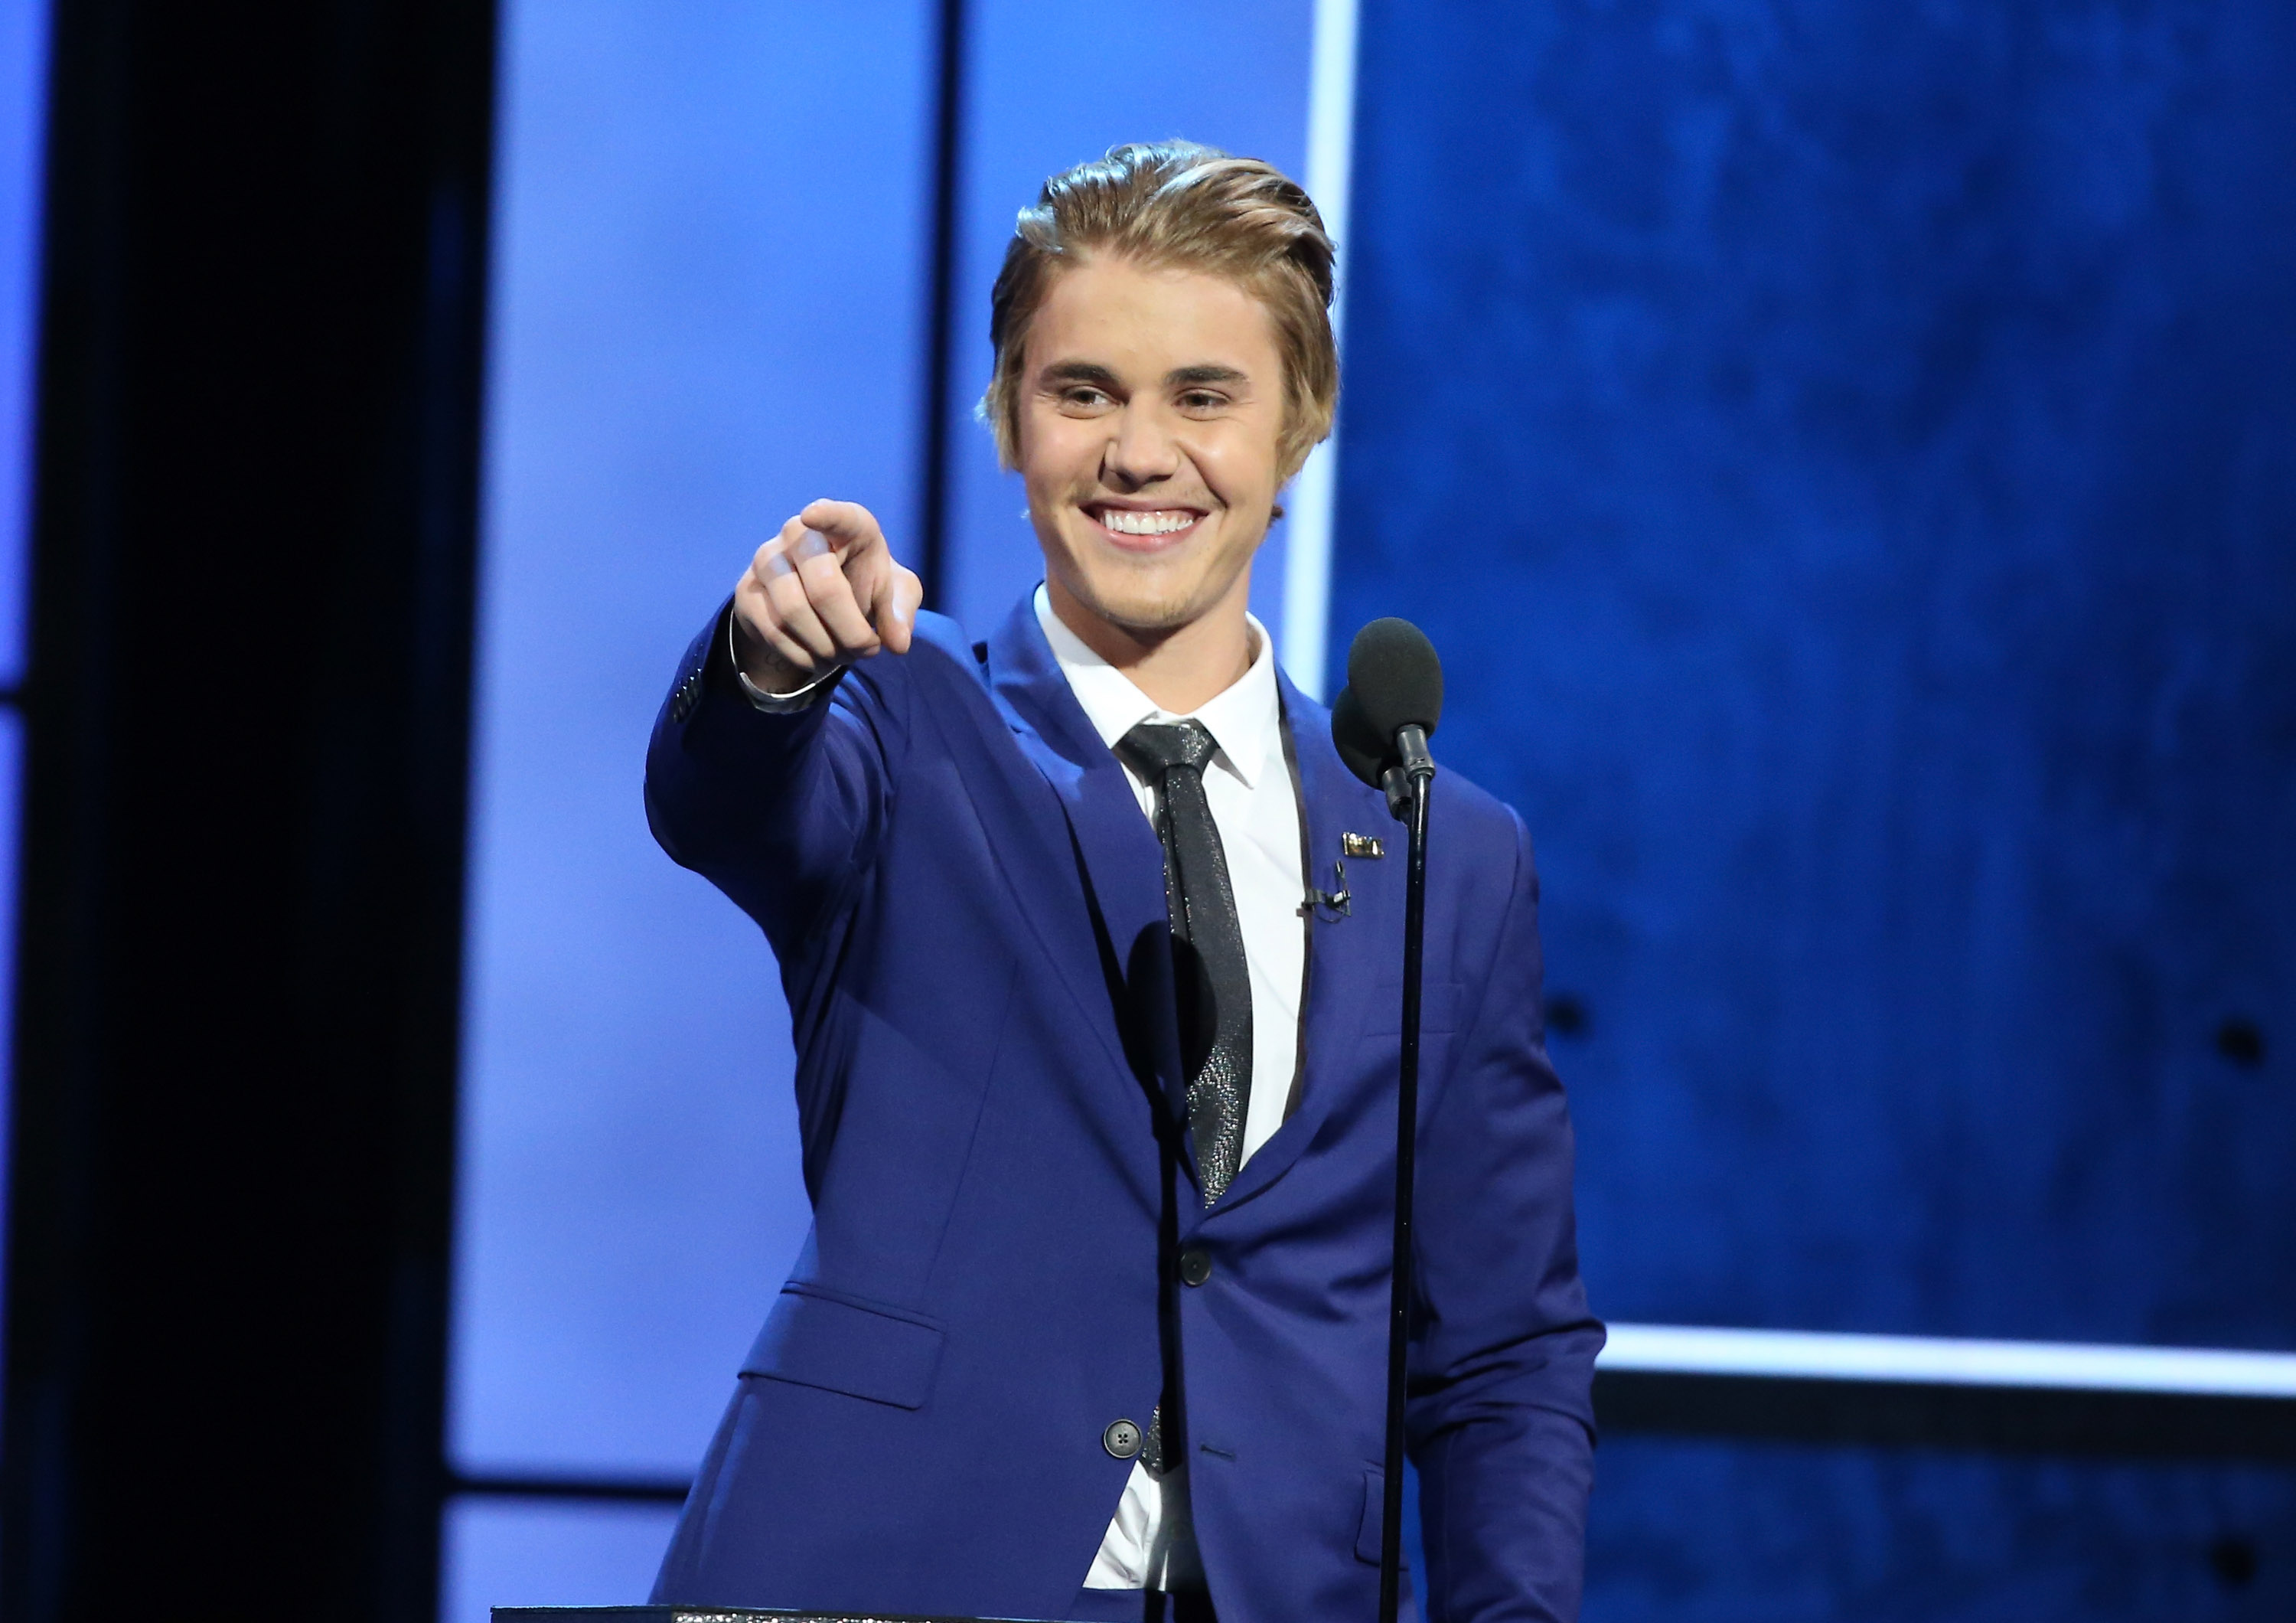 c6661e374d2eb4 Justin Bieber speaks onstage during Comedy Central Roast of Justin Bieber  held at Sony Picture Studios in Los Angeles